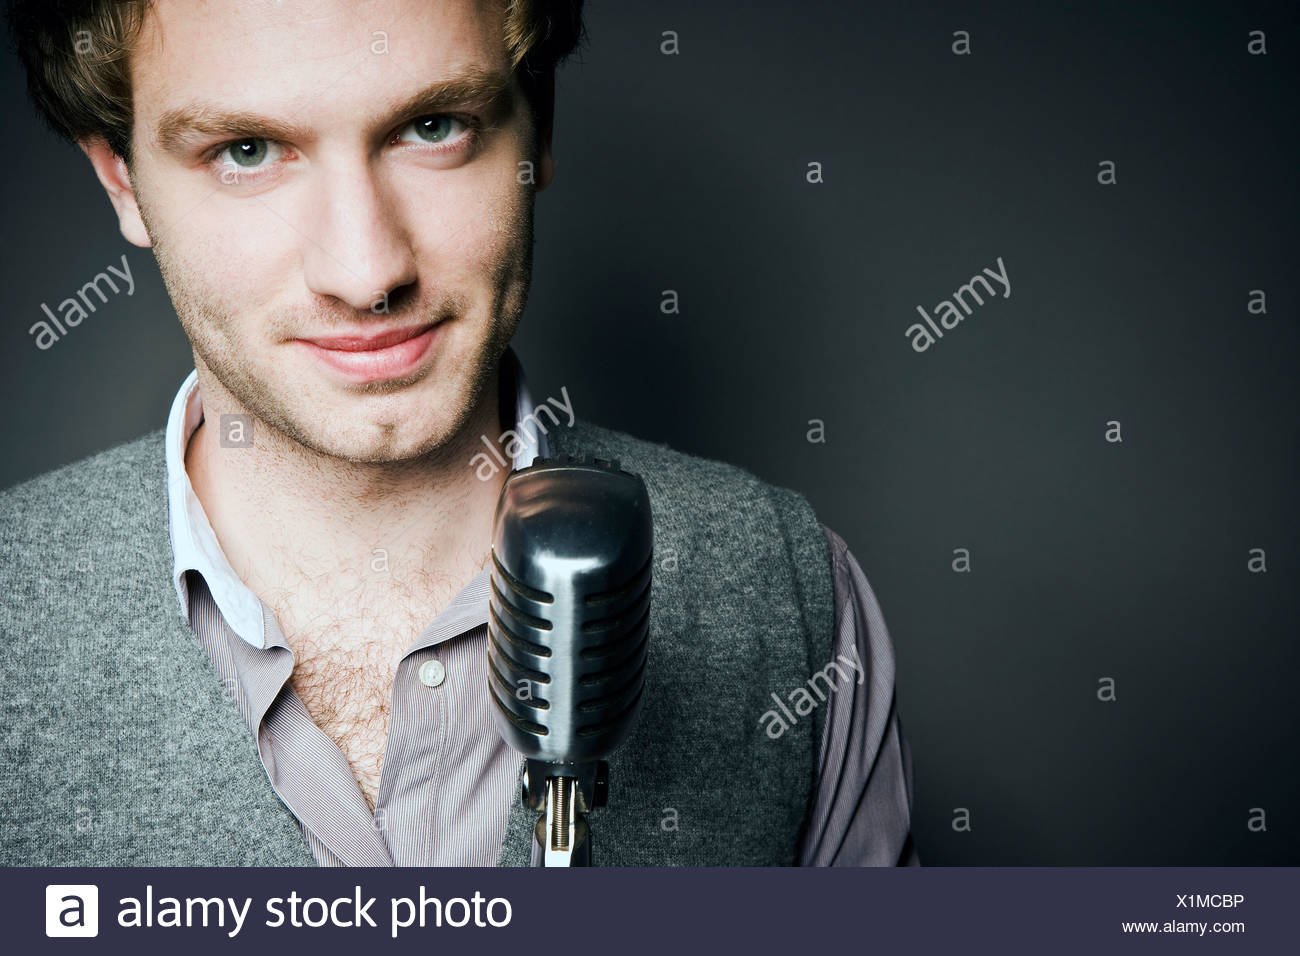 Confident man with mic - Stock Image